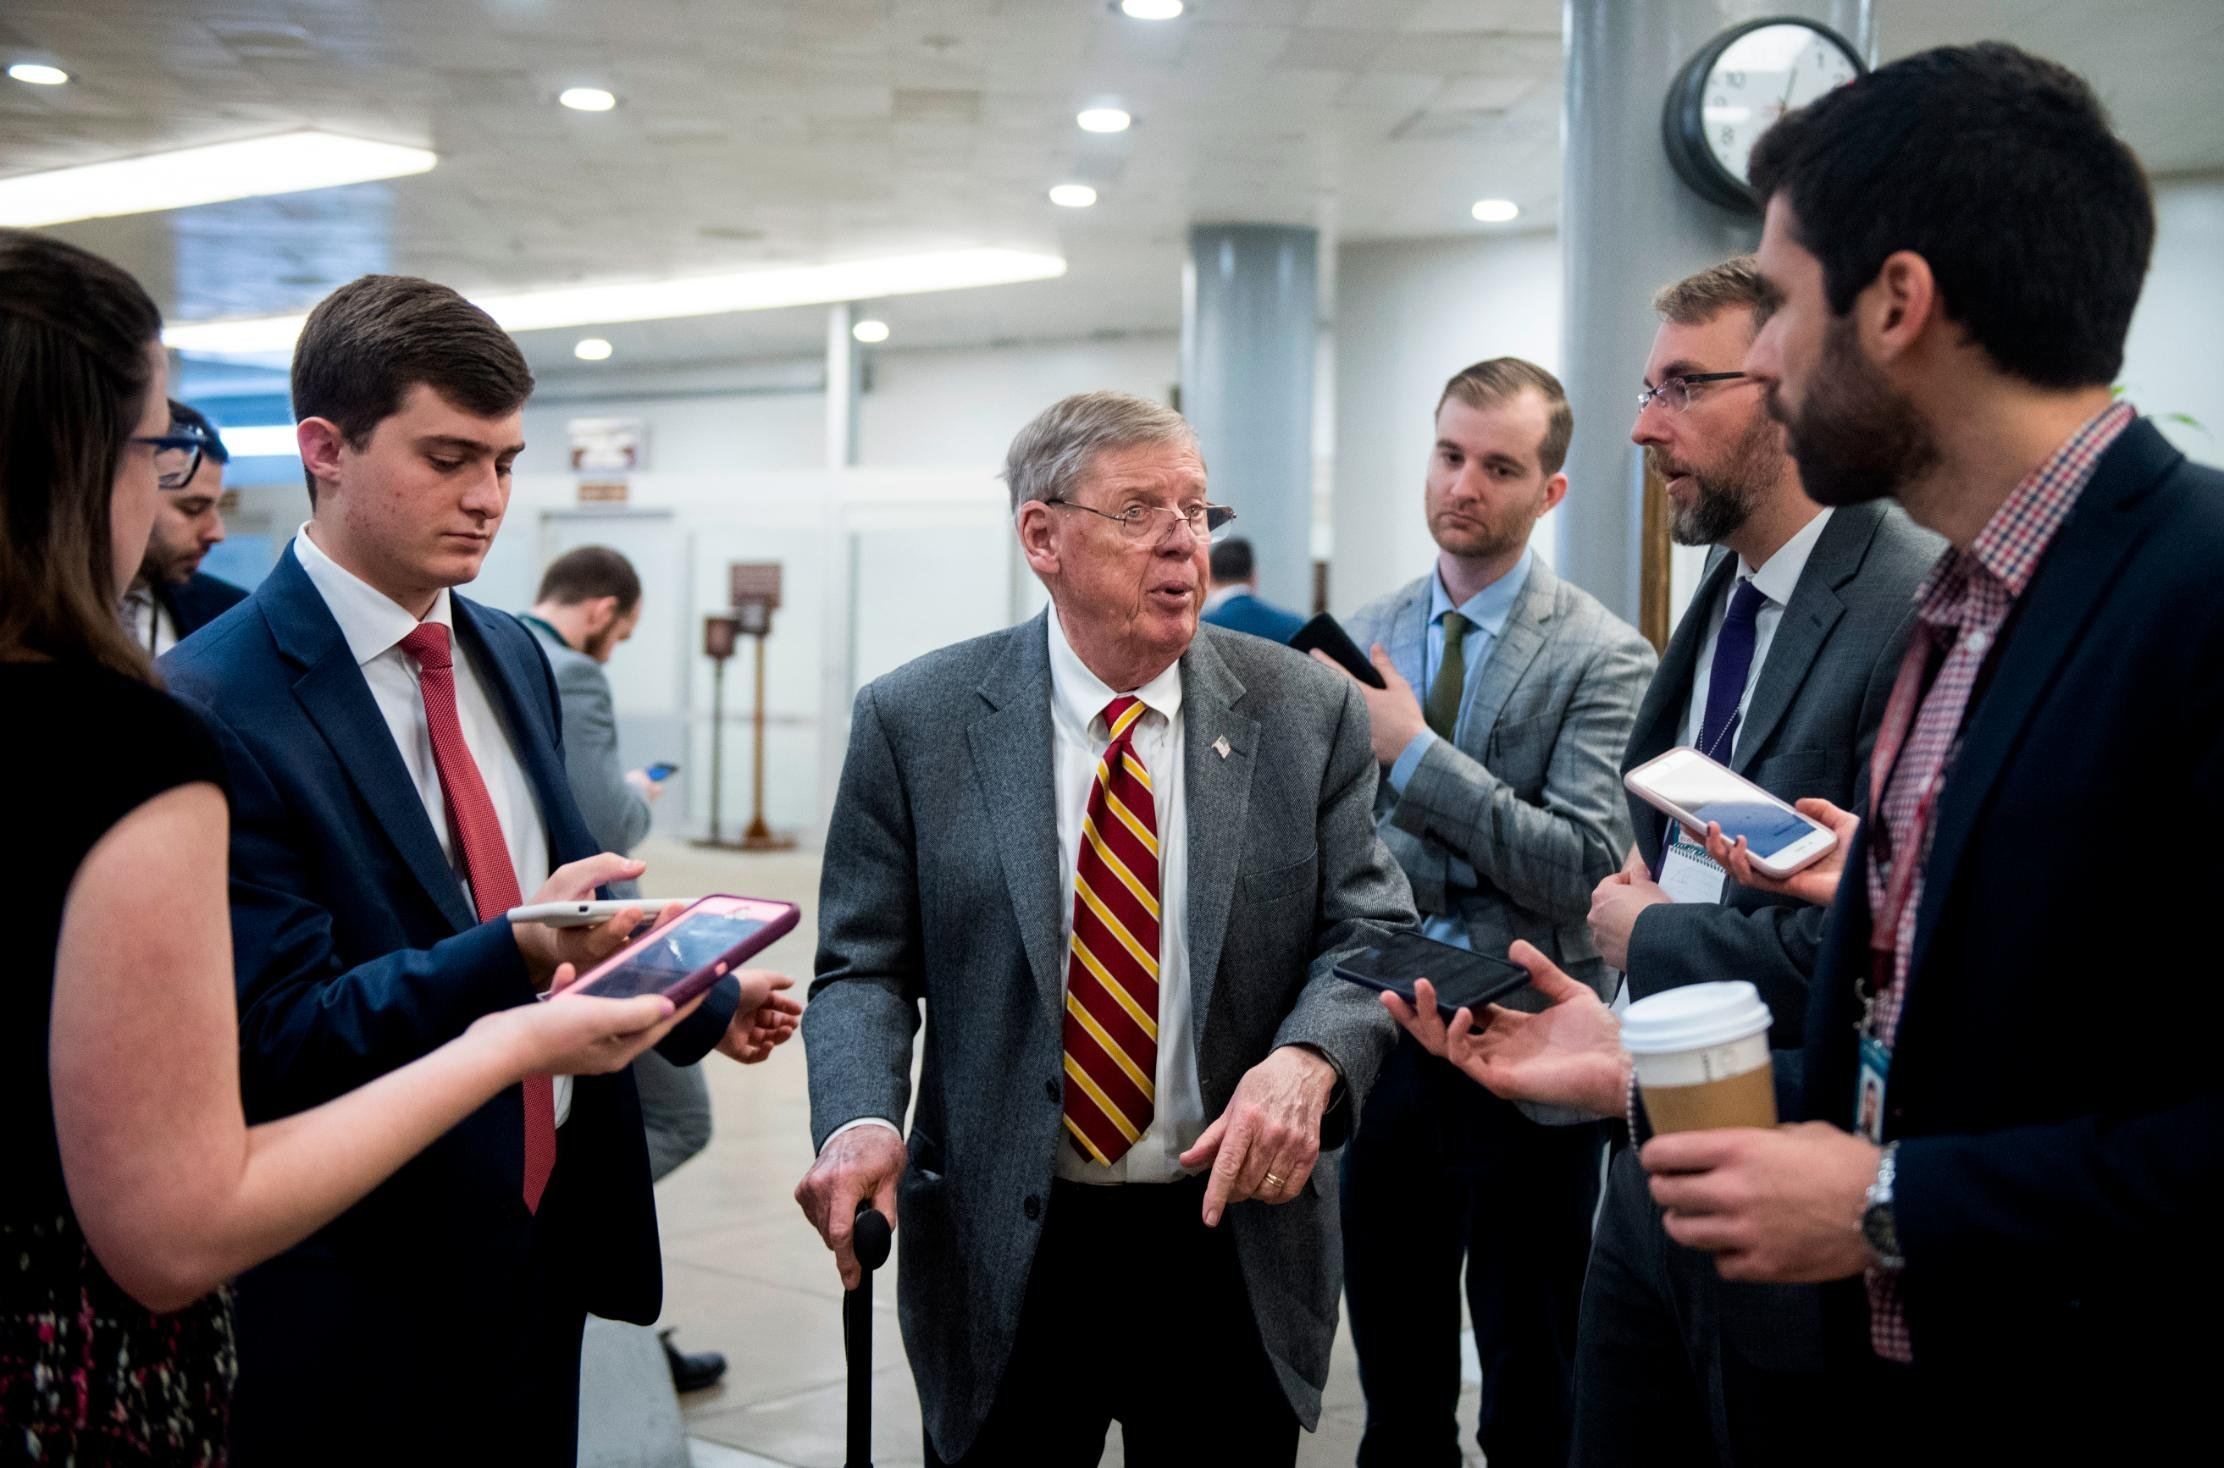 Sen. Johnny Isakson fractures ribs in fall